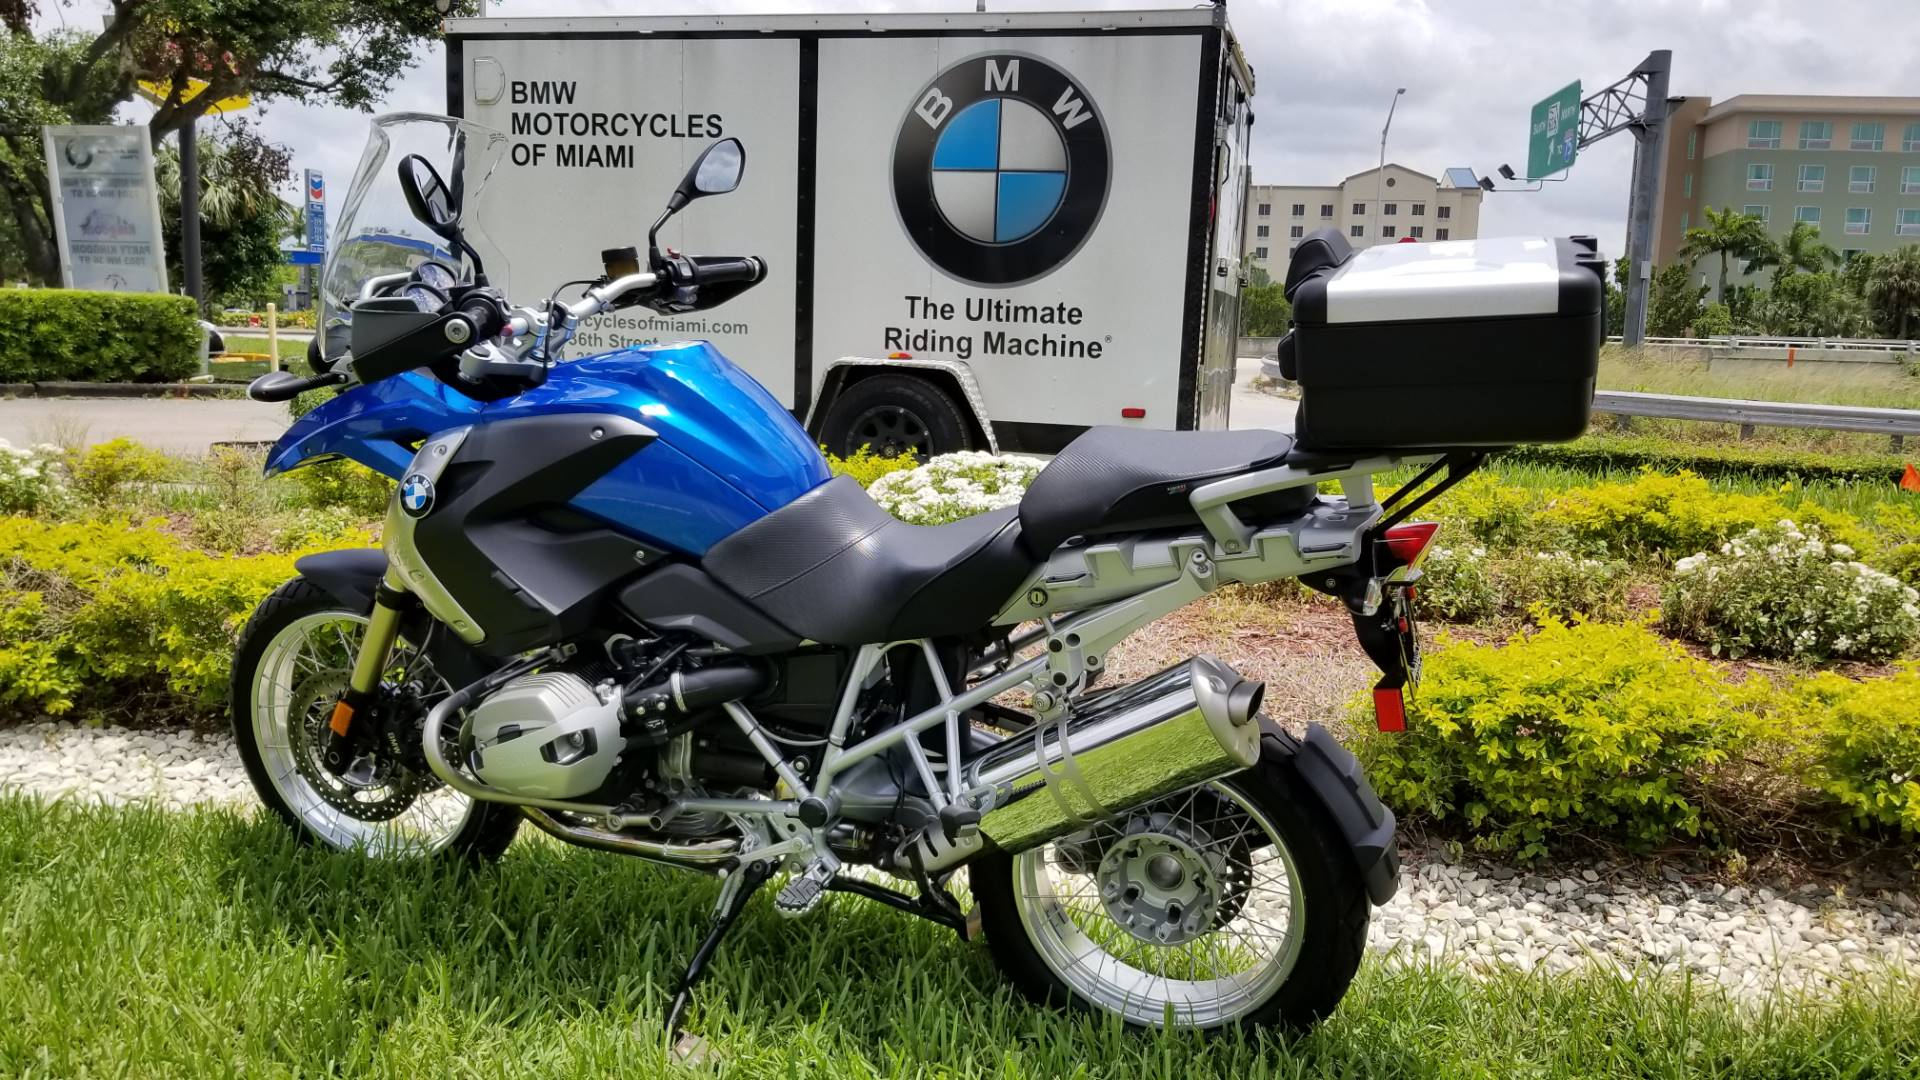 Used 2012 BMW R 1200 GS For Sale, BMW R 1200GS For Sale, BMW Motorcycle r1200GS, BMW R1200GS, BMW, GS, DUAL. - Photo 7